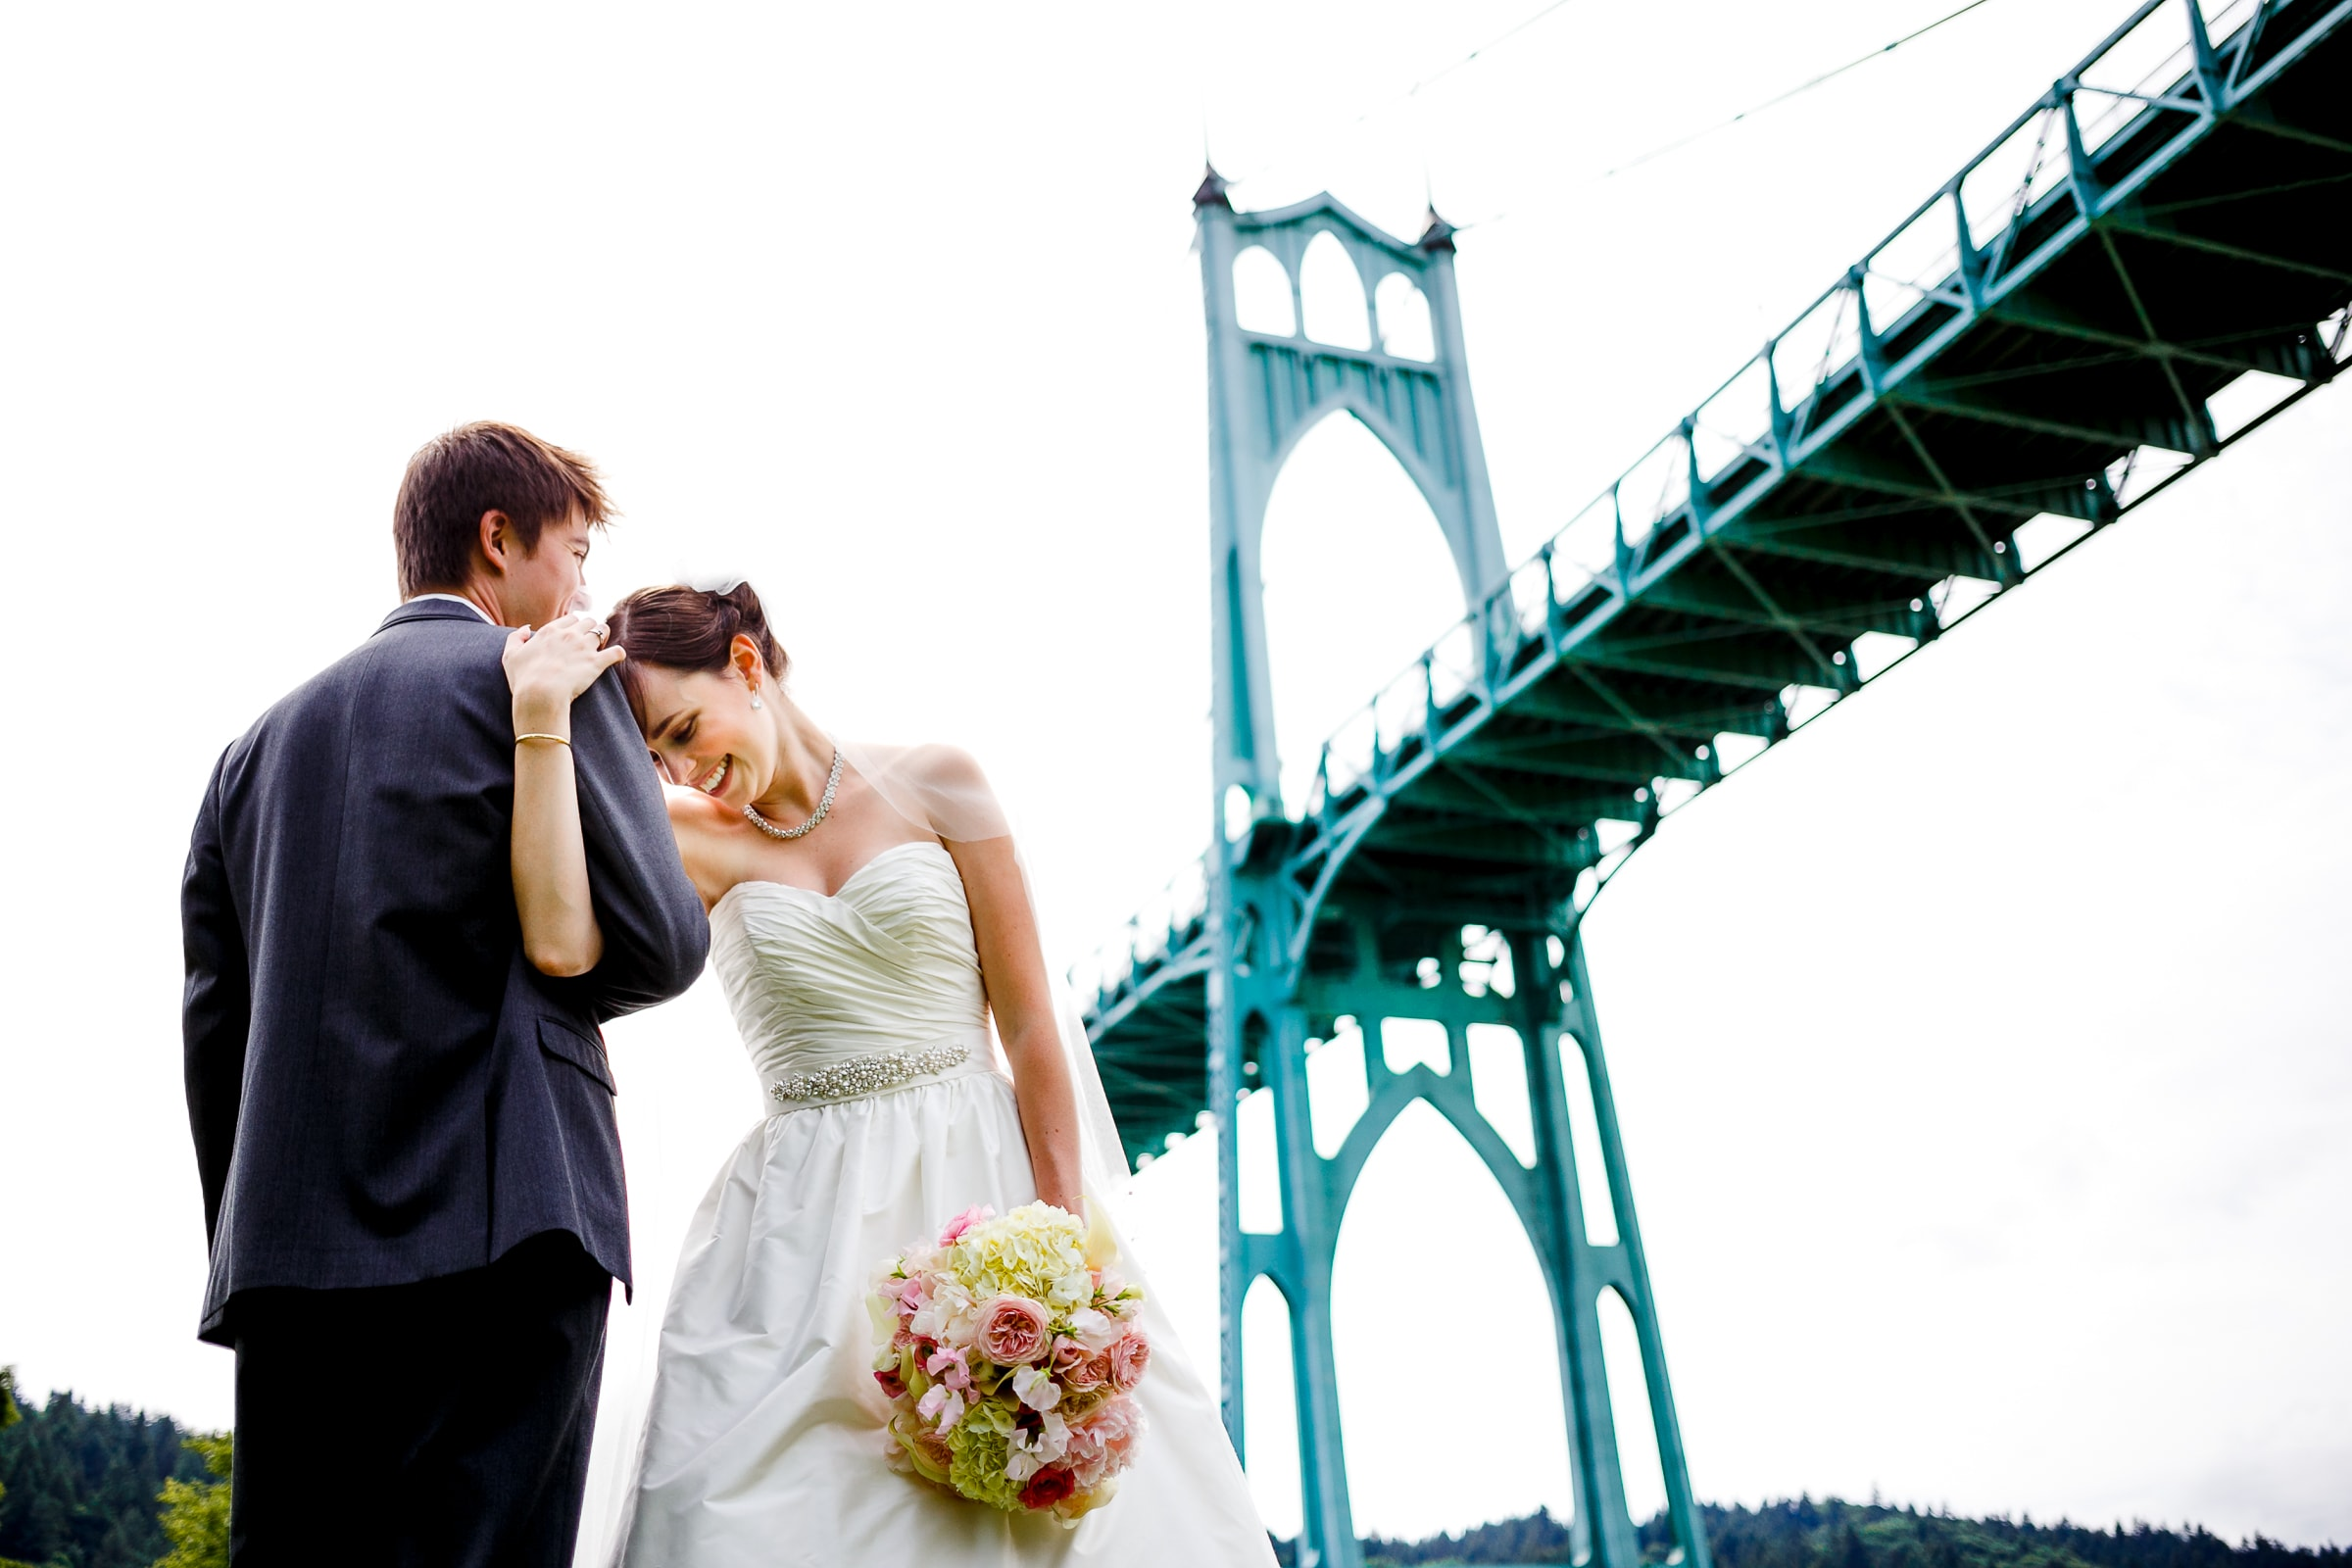 Bride and groom having a moment together under the St John's Bridge in Portland before heading to their Waverley Country Club wedding